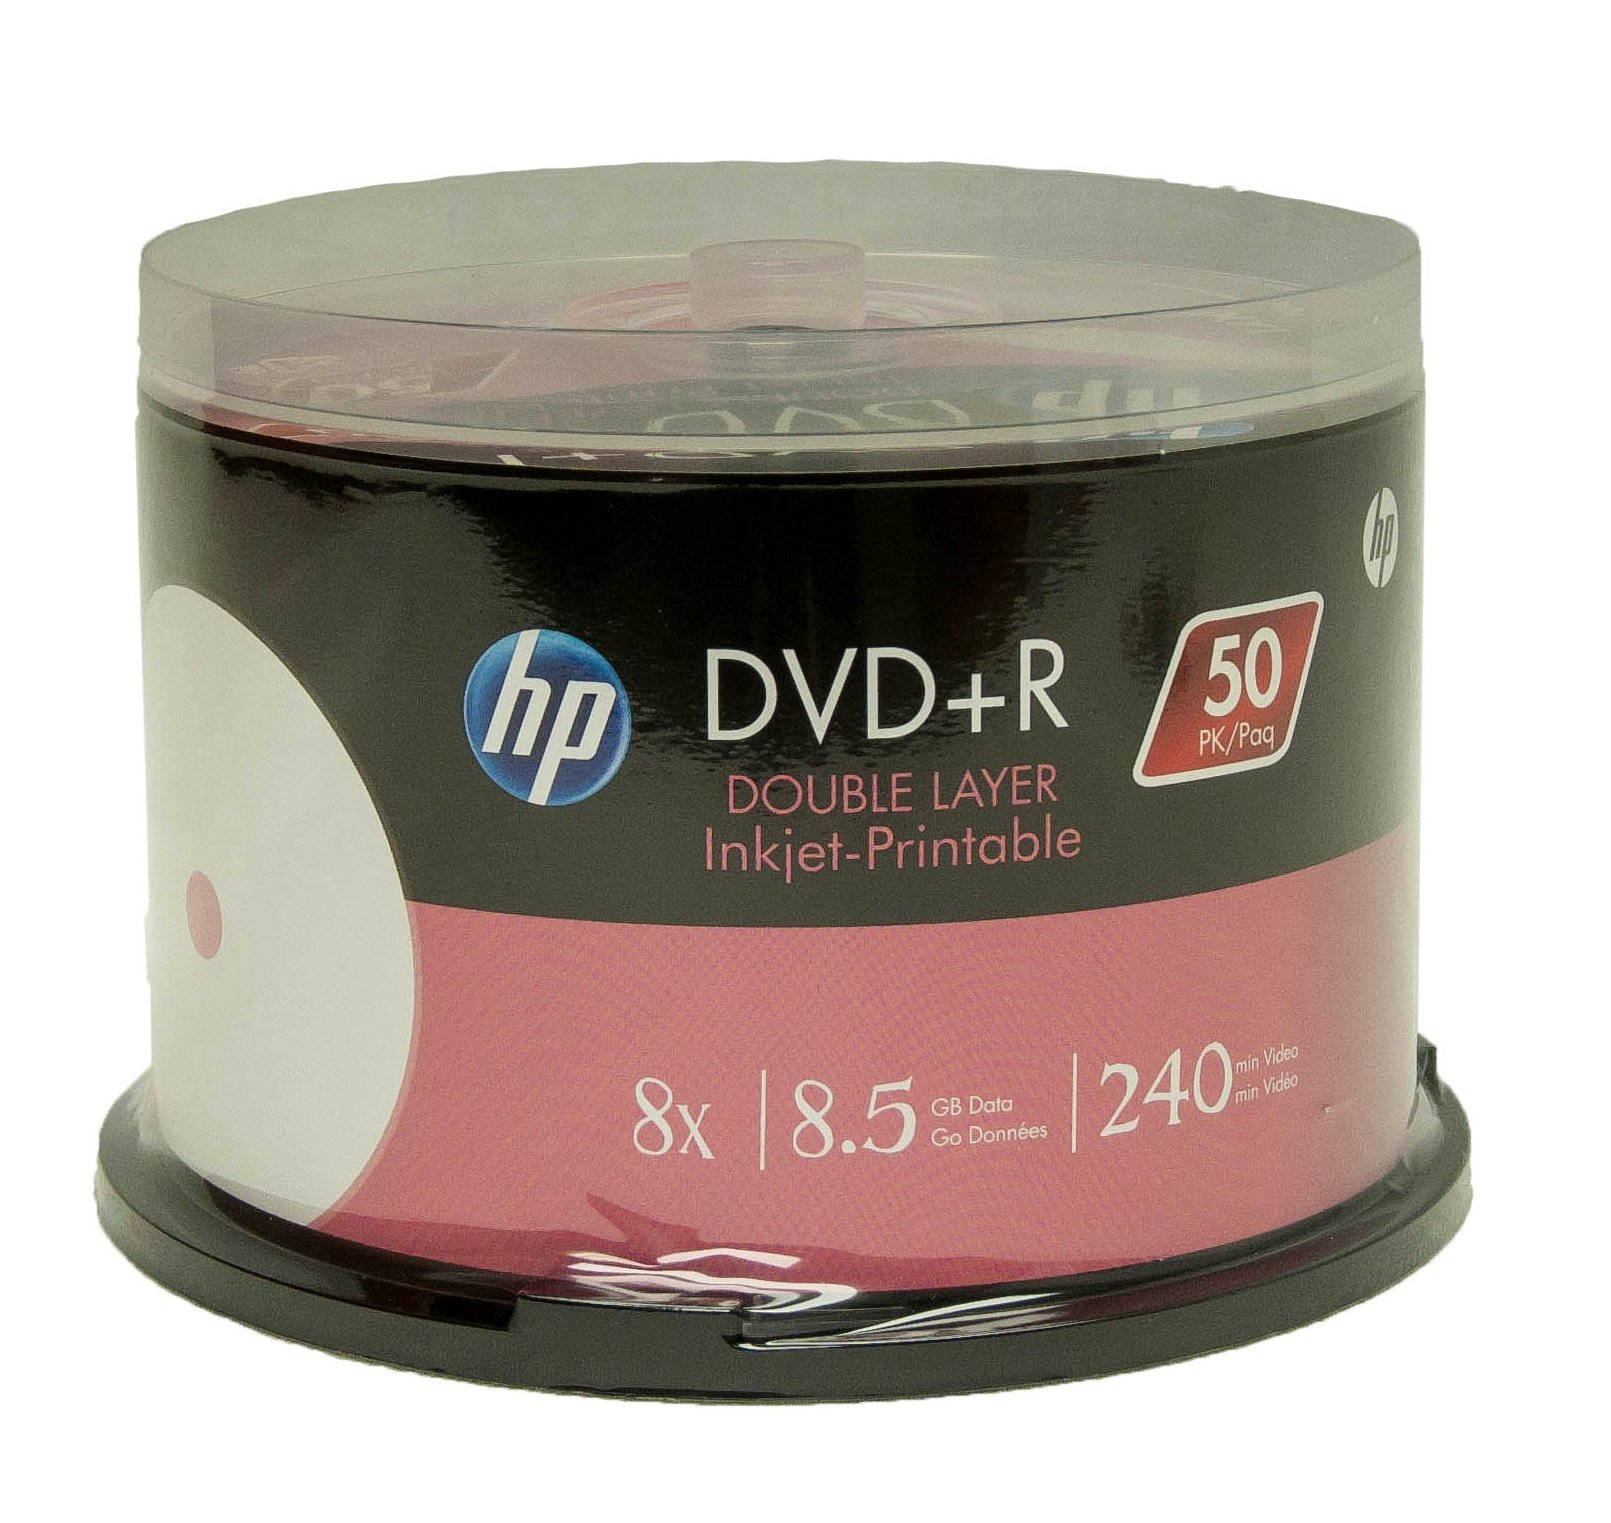 Hp Dvd+R Dl Double Layer 8X 8.5Gb White Inkjet Printable 50 Pack In Spindle by HP